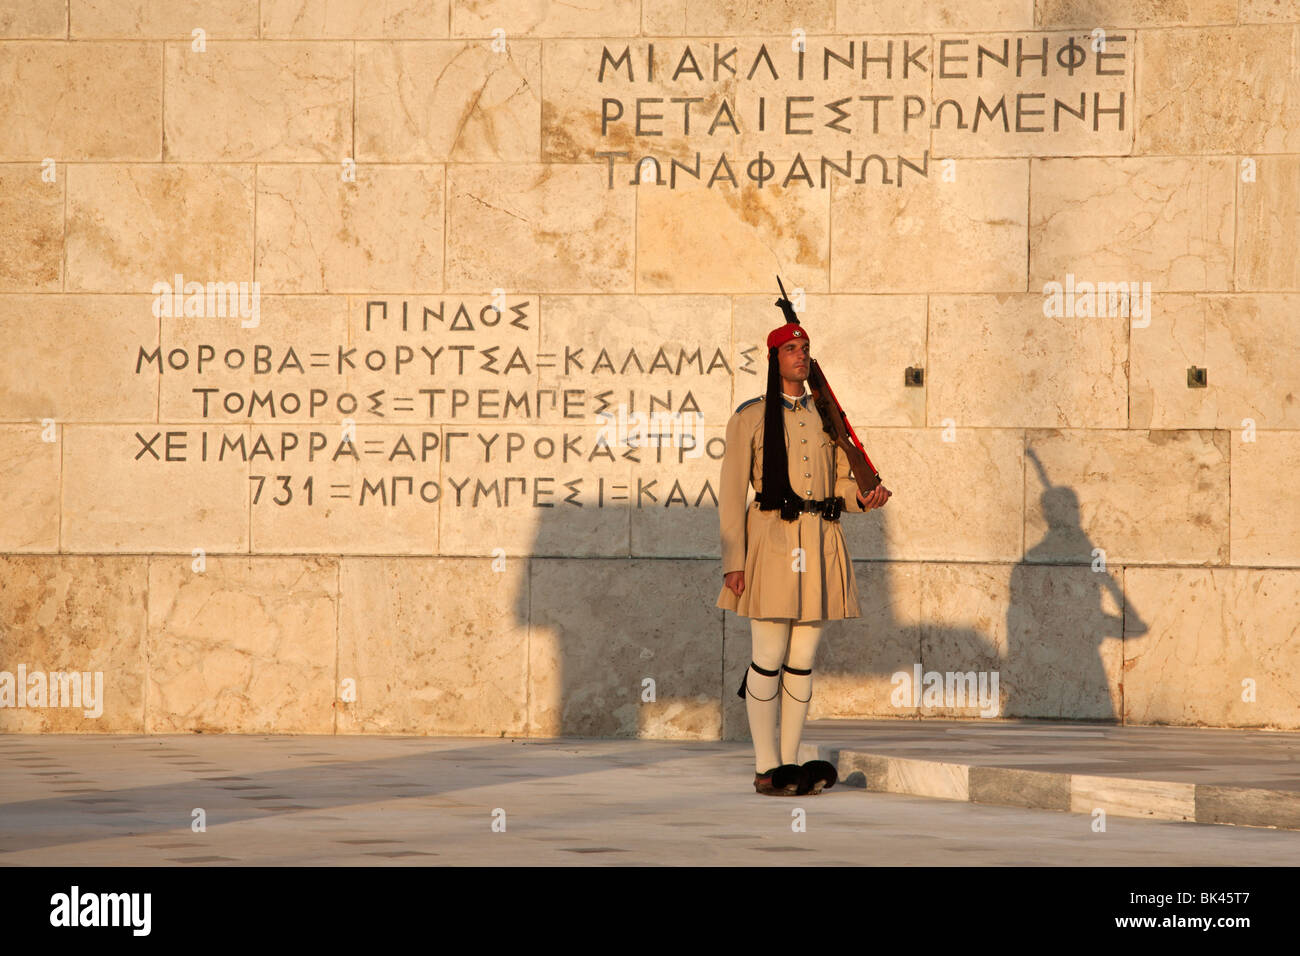 an evaluation of the funeral oration of pericles The official funeral oration for the athenian soldiers who died at one of the opening battles of the peloponnesian war by the leader of democratic athens, pericles it is unlikely that these are his exact words.